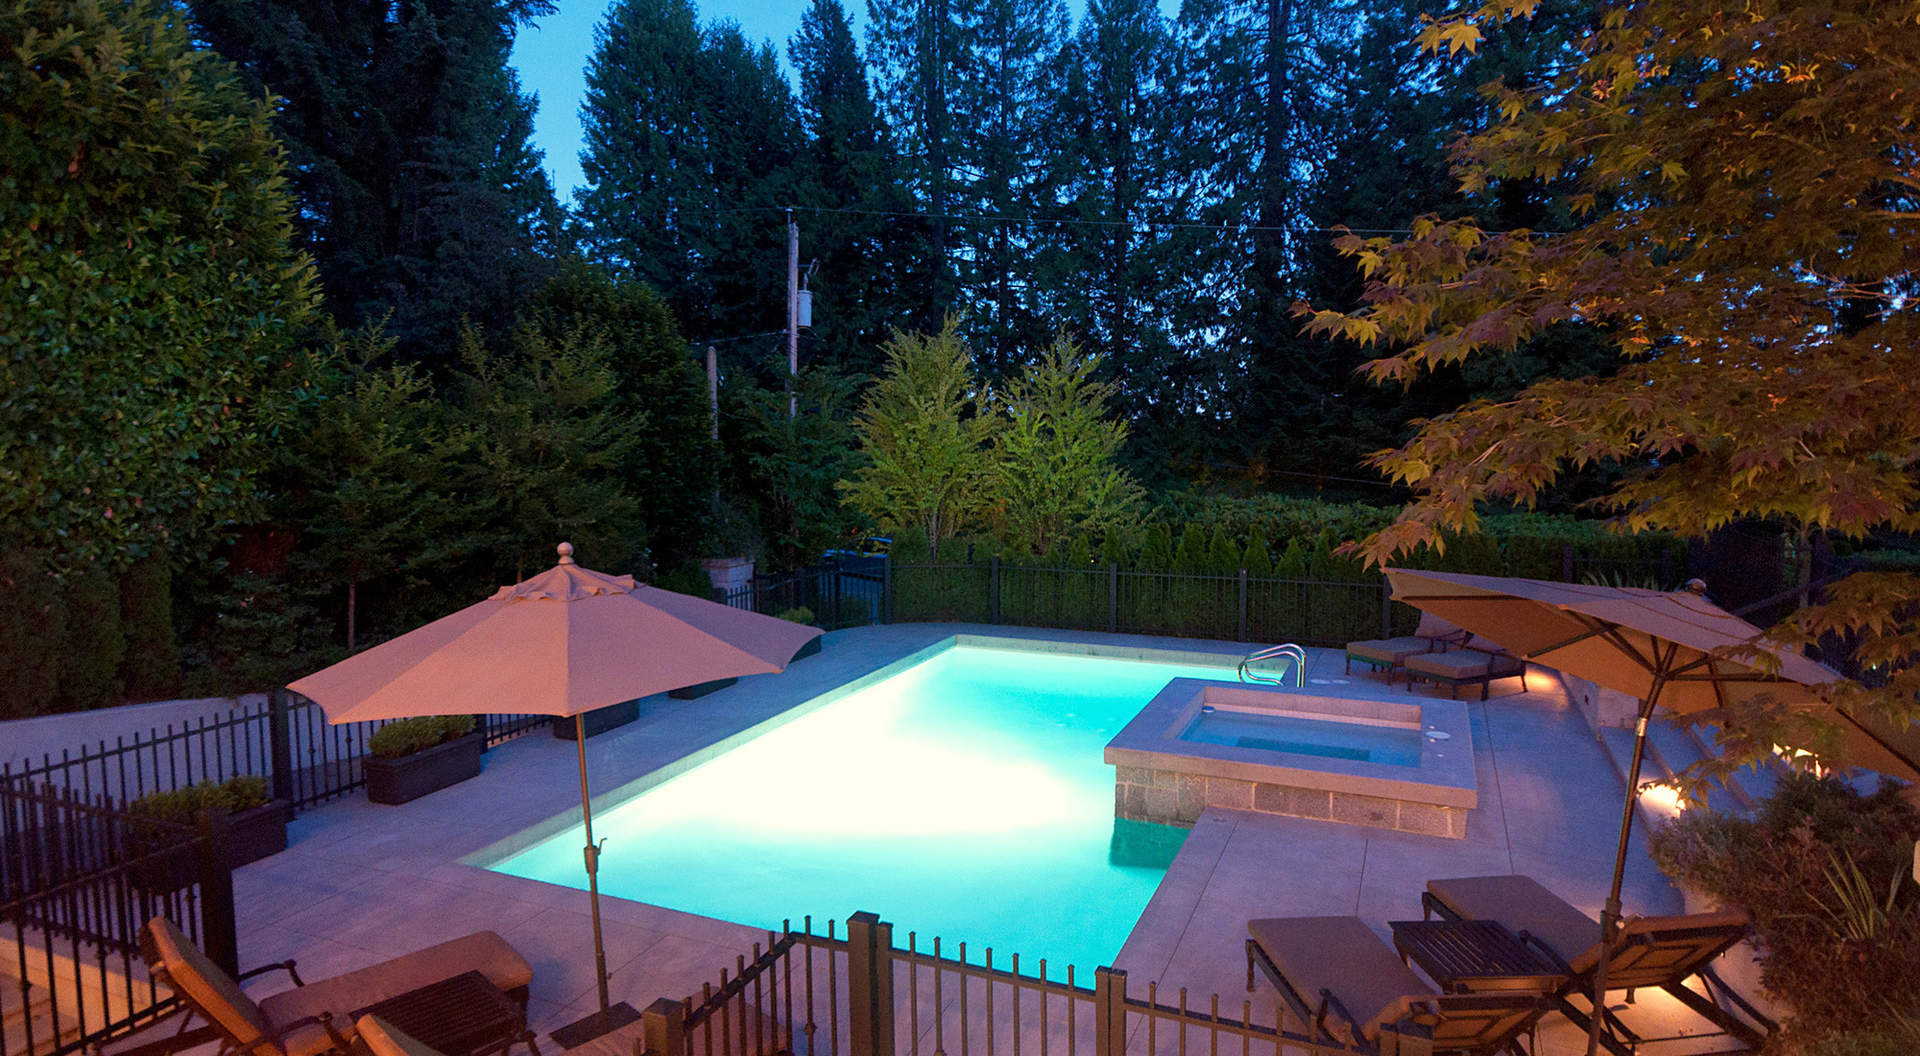 South Facing Outdoor Pool at Twilight